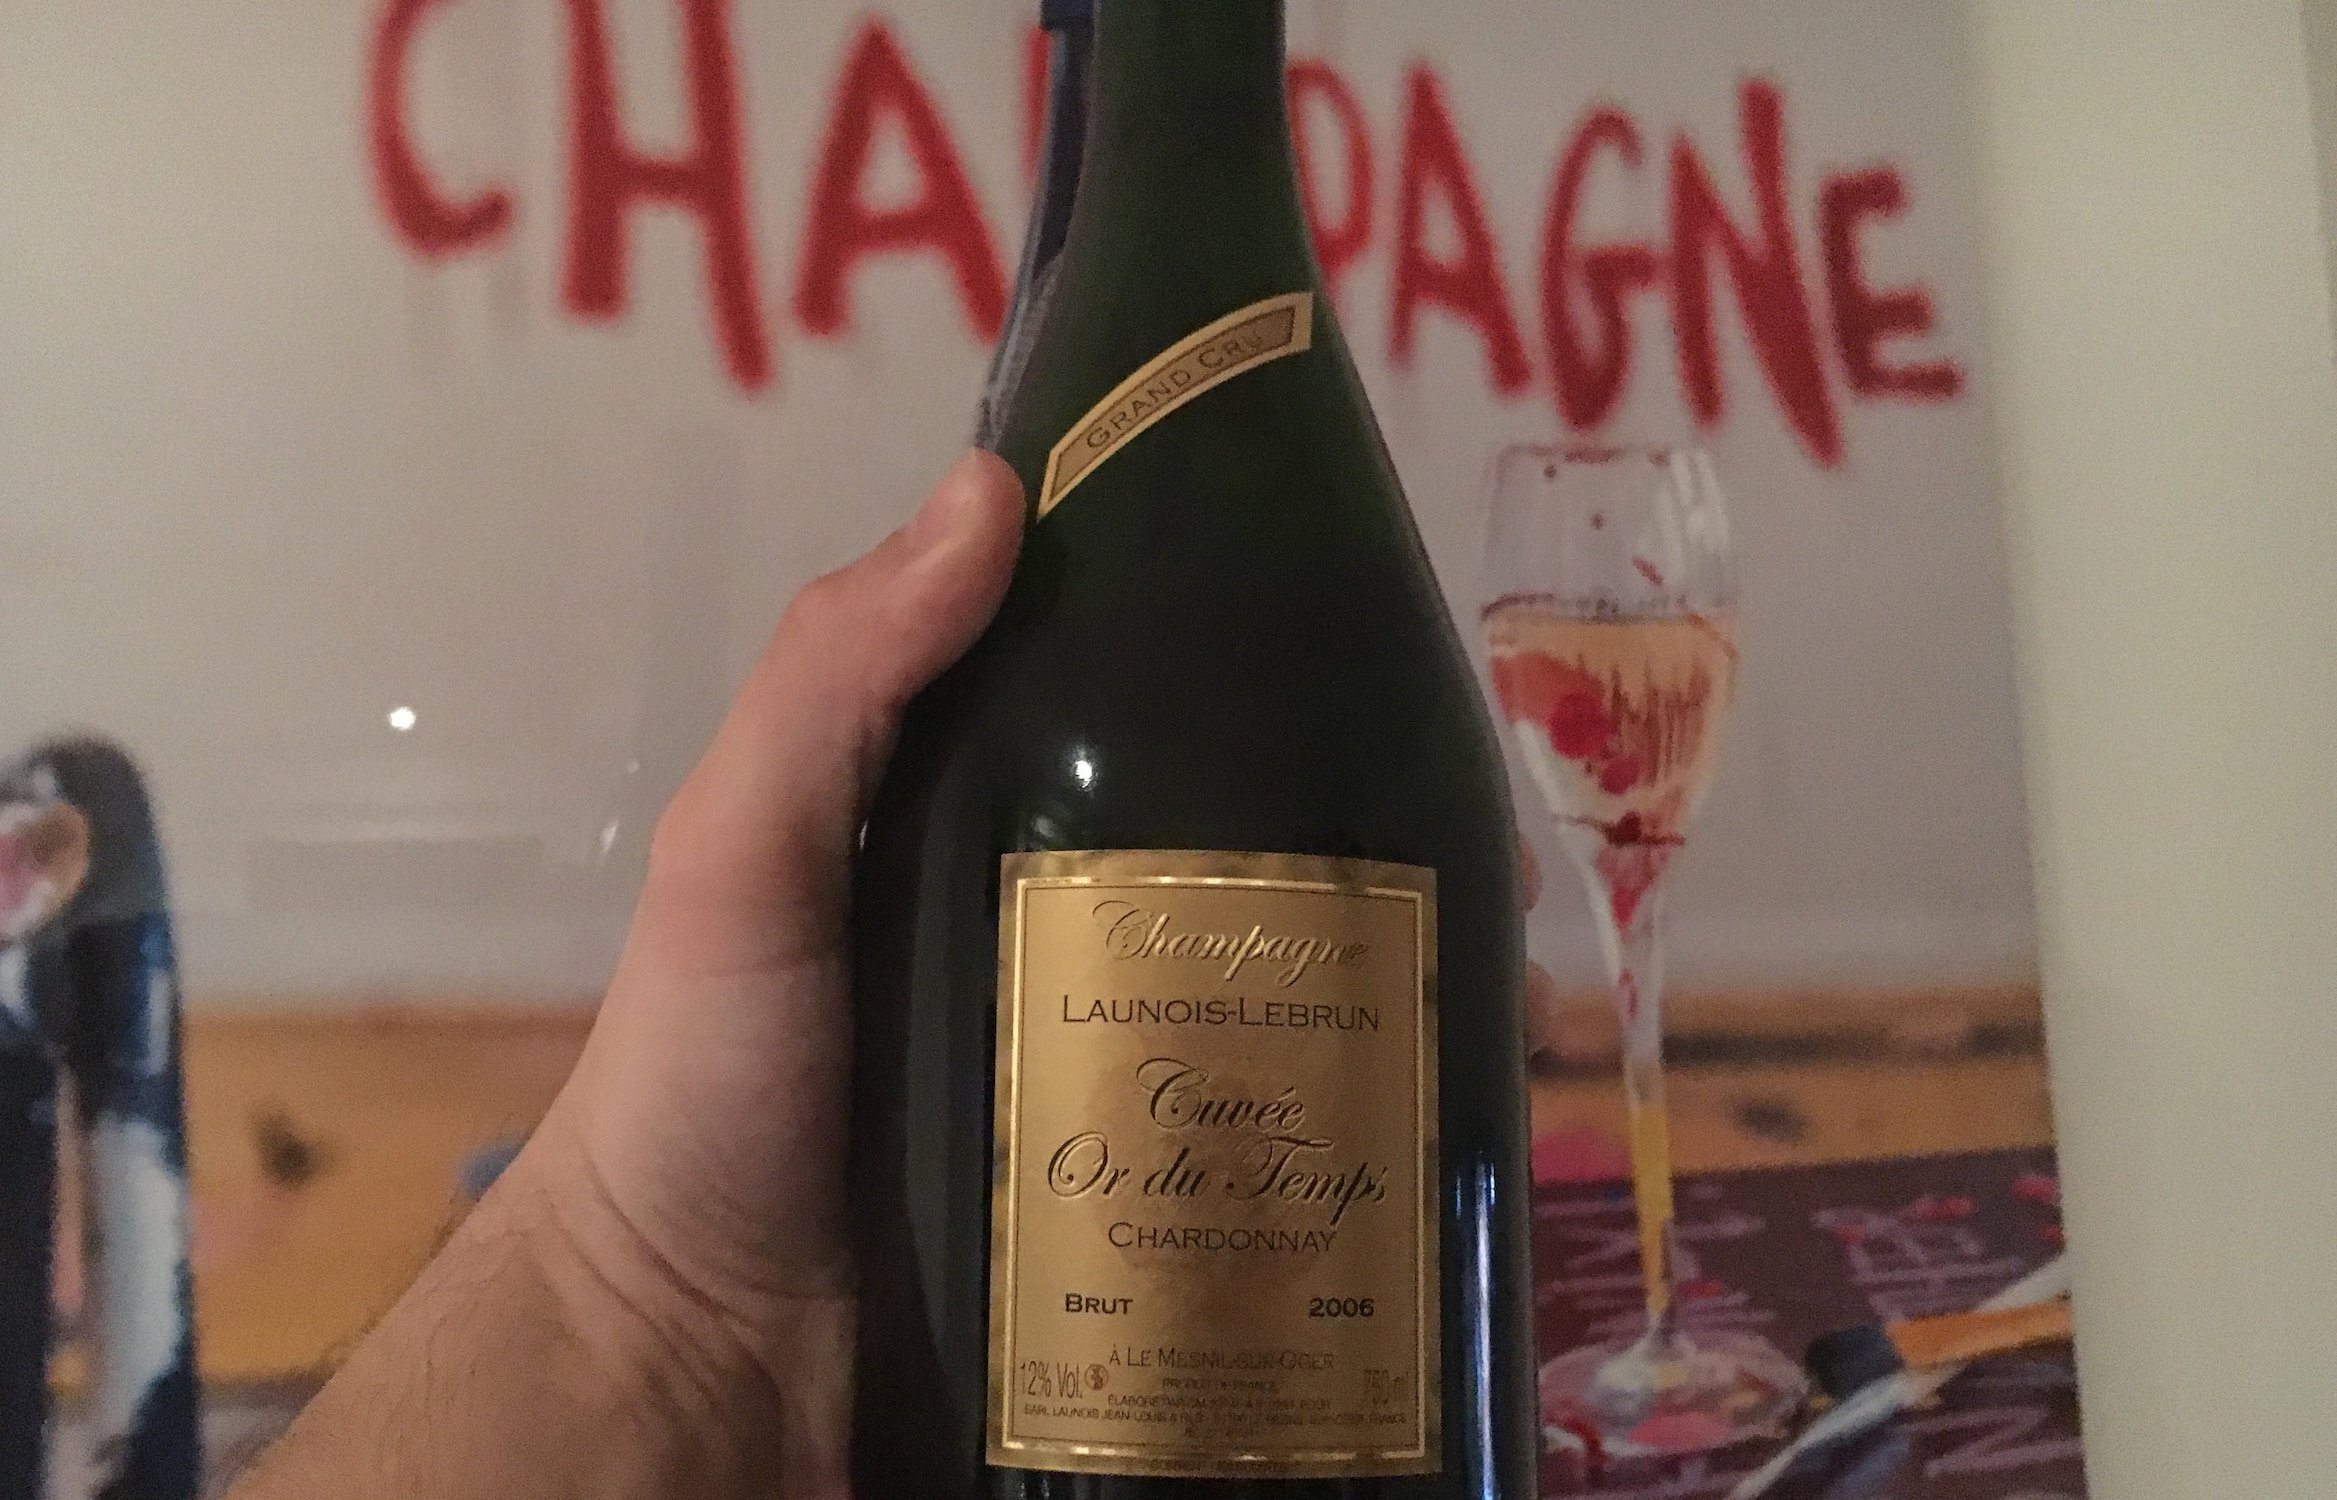 Champagne Launois Lebrun, Champagne wie?